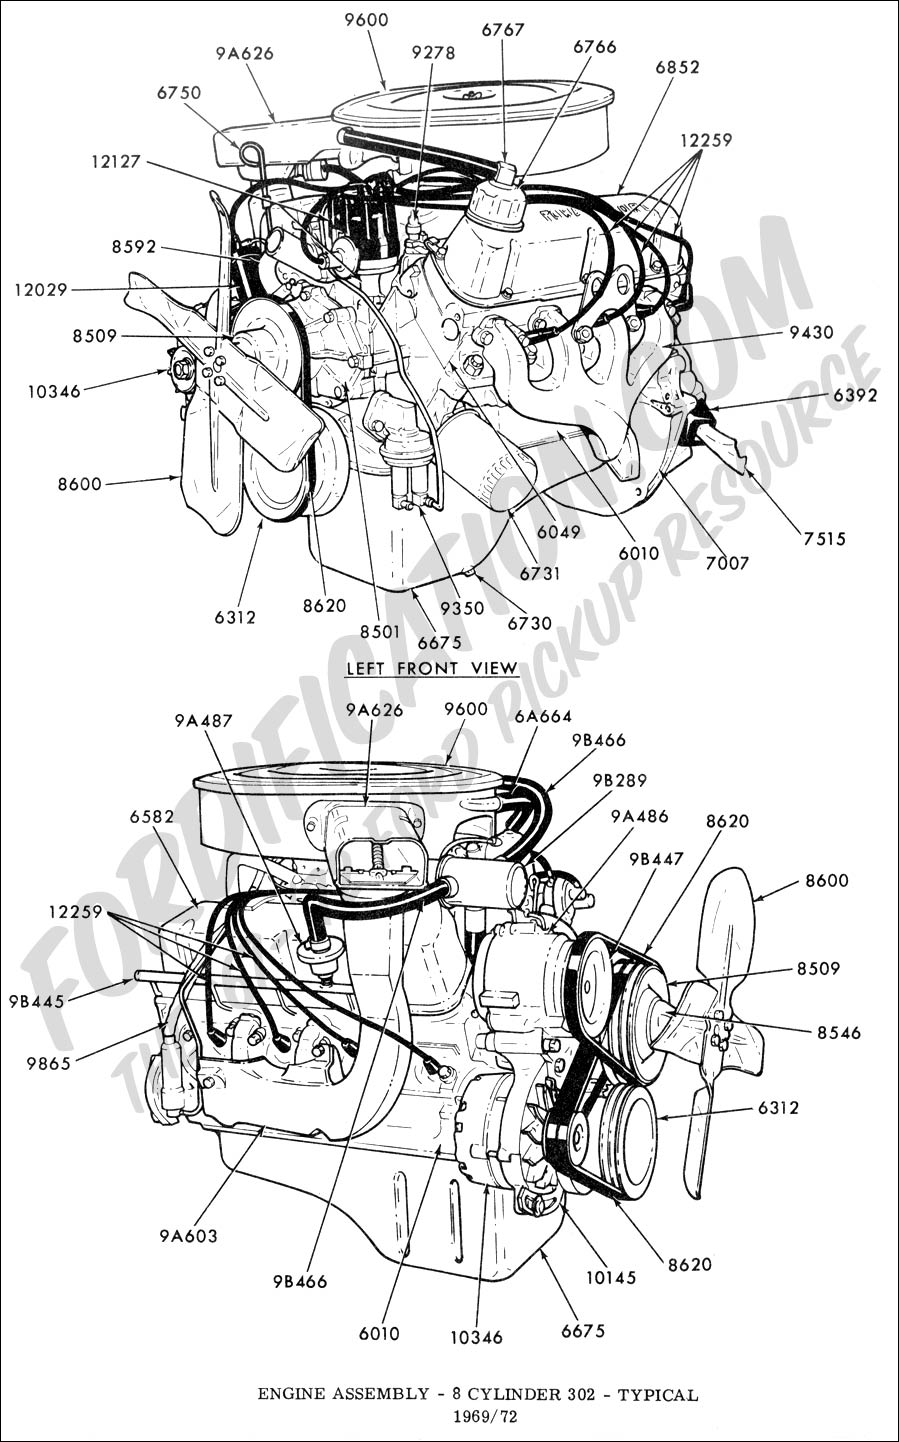 1996 F 700 Wiring Diagram Library Ford 250 Fuel Pump Truck Technical Drawings And Schematics Section E F700 1992 1995